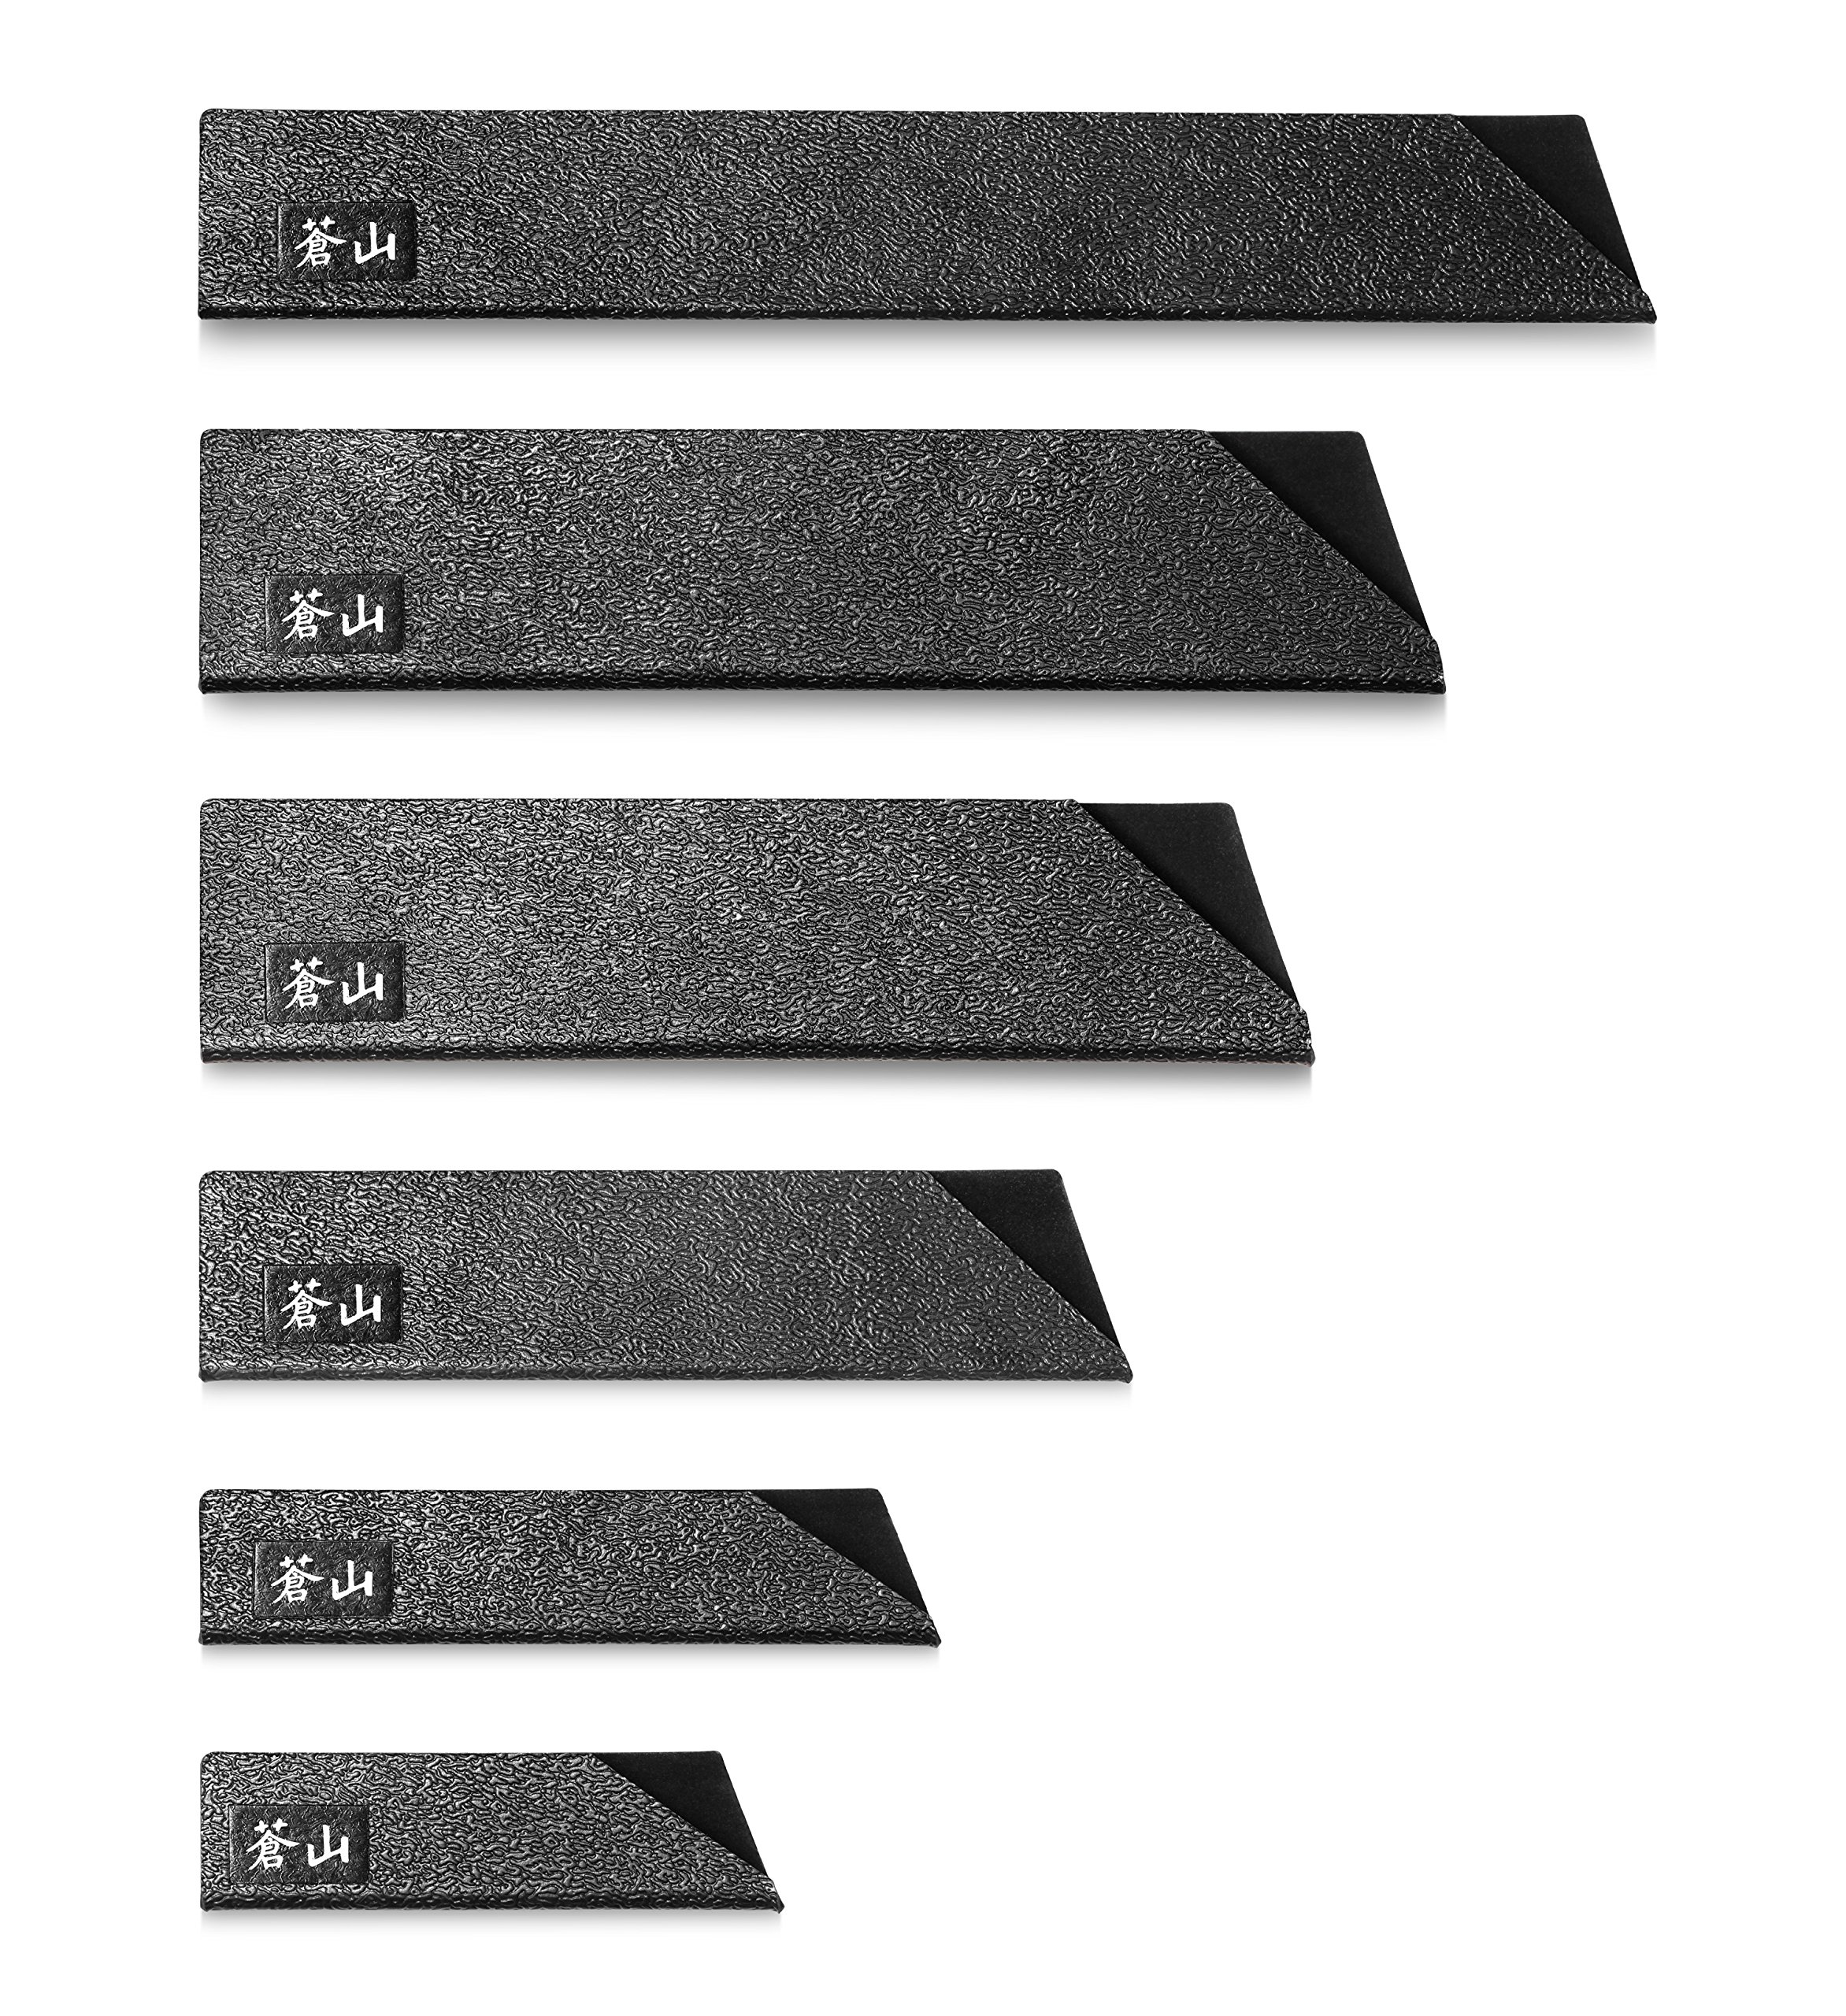 Cangshan 61741 6-Piece Knife Edge Guard Set, Black by Cangshan